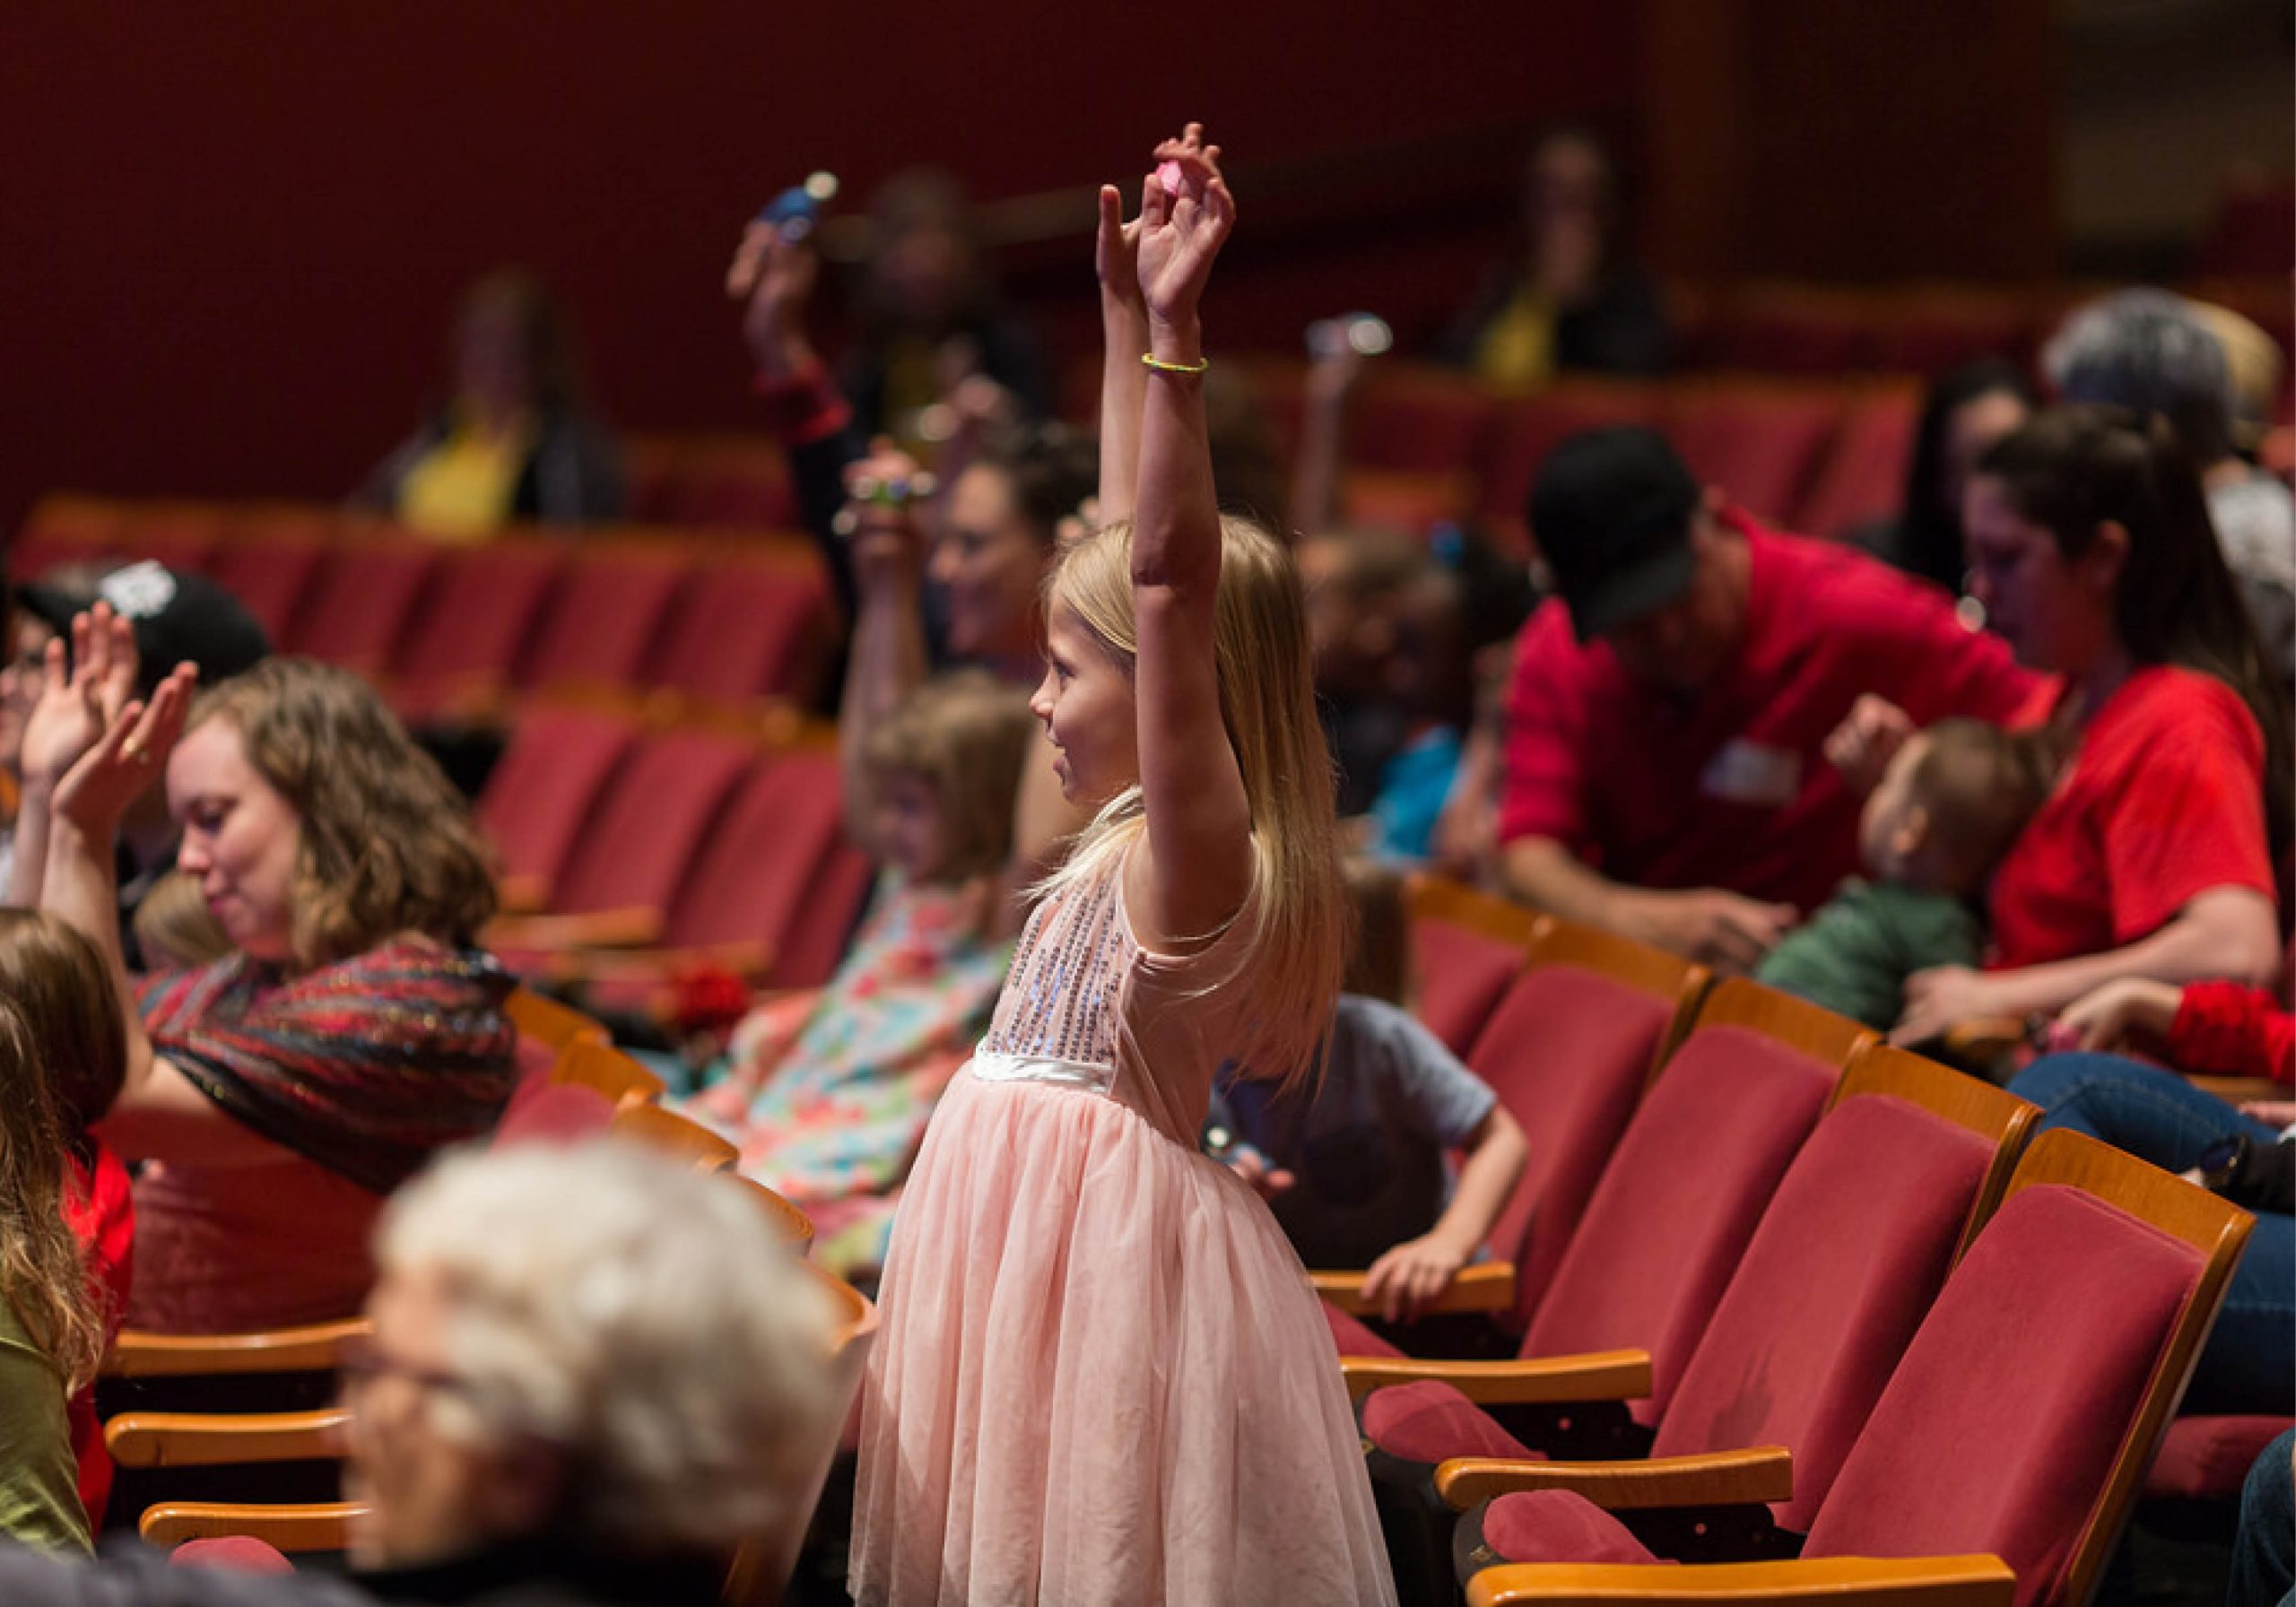 Young girl in a pink dress has hands raised in excitement as she stands within the crowds of the red, performance seats